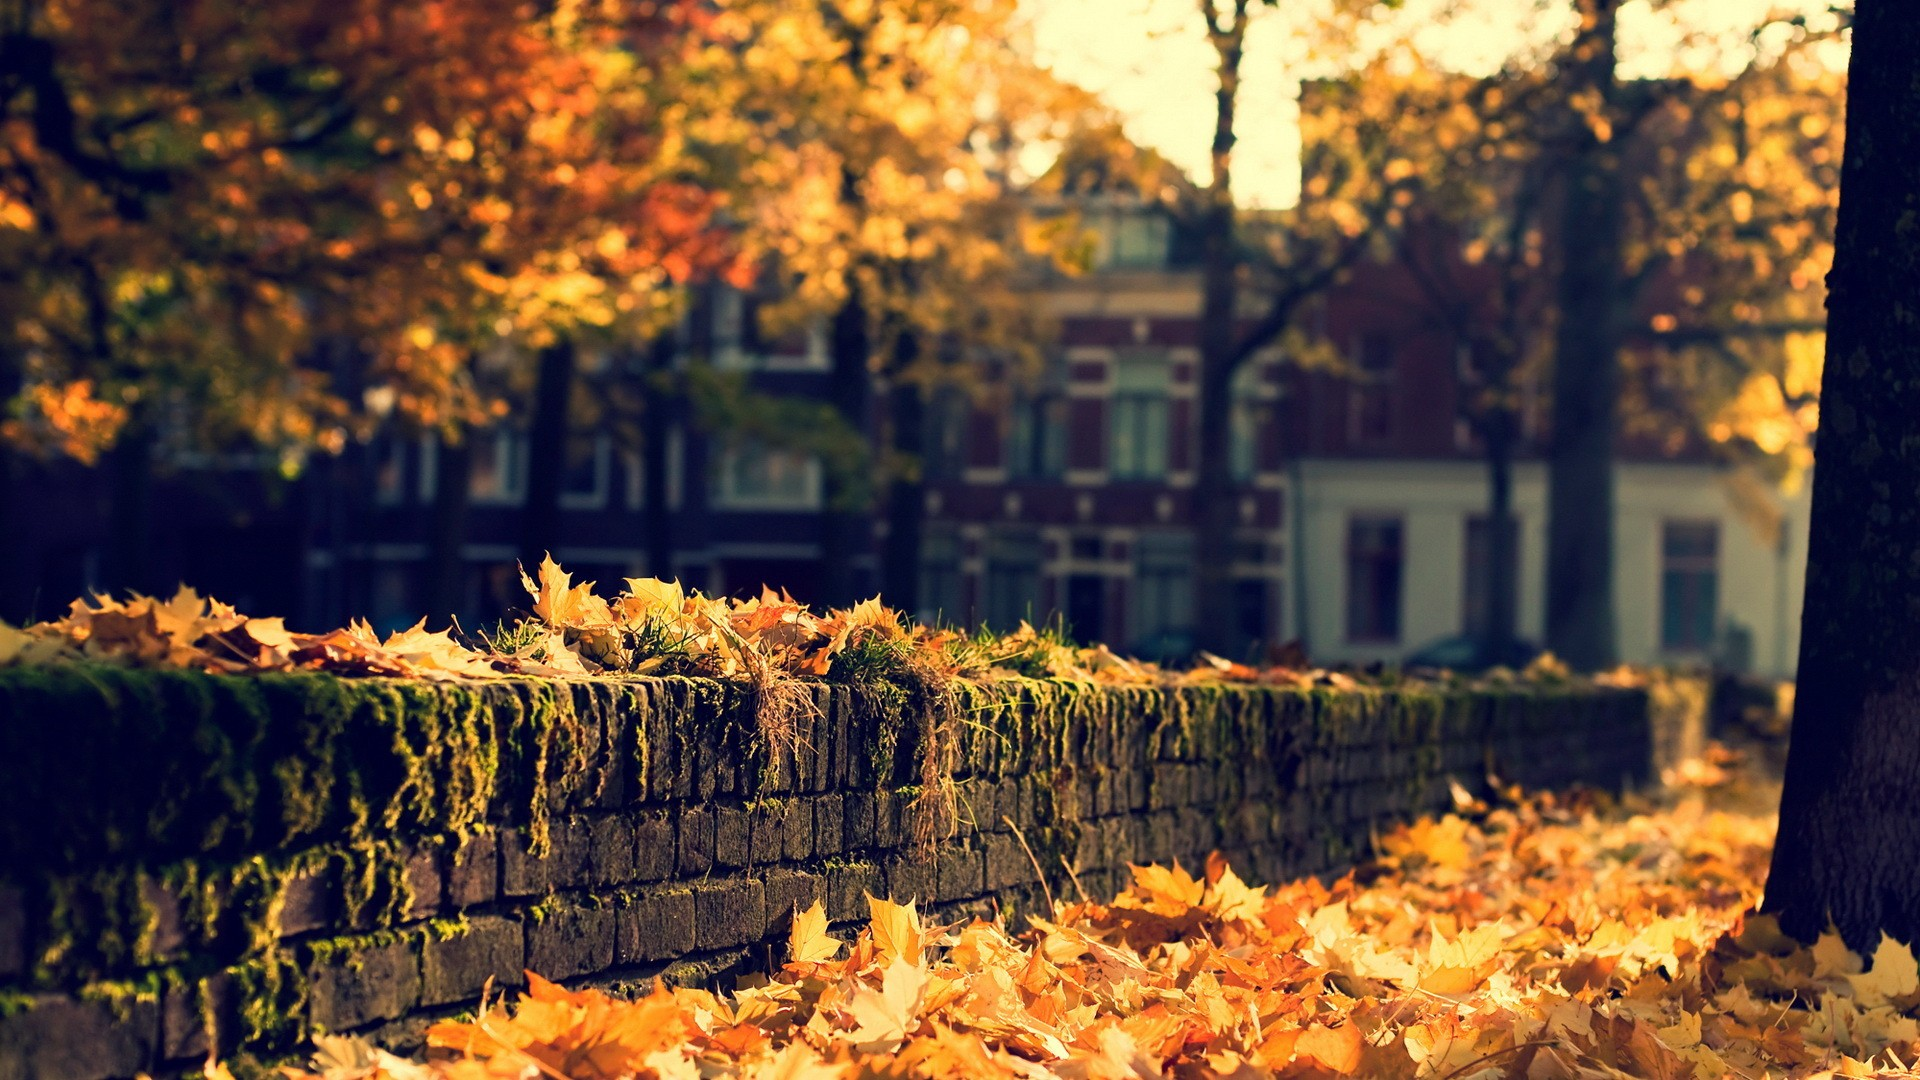 Fall Wallpaper Nature Leaves Autumn Fall Seasons Trees Wall Stone